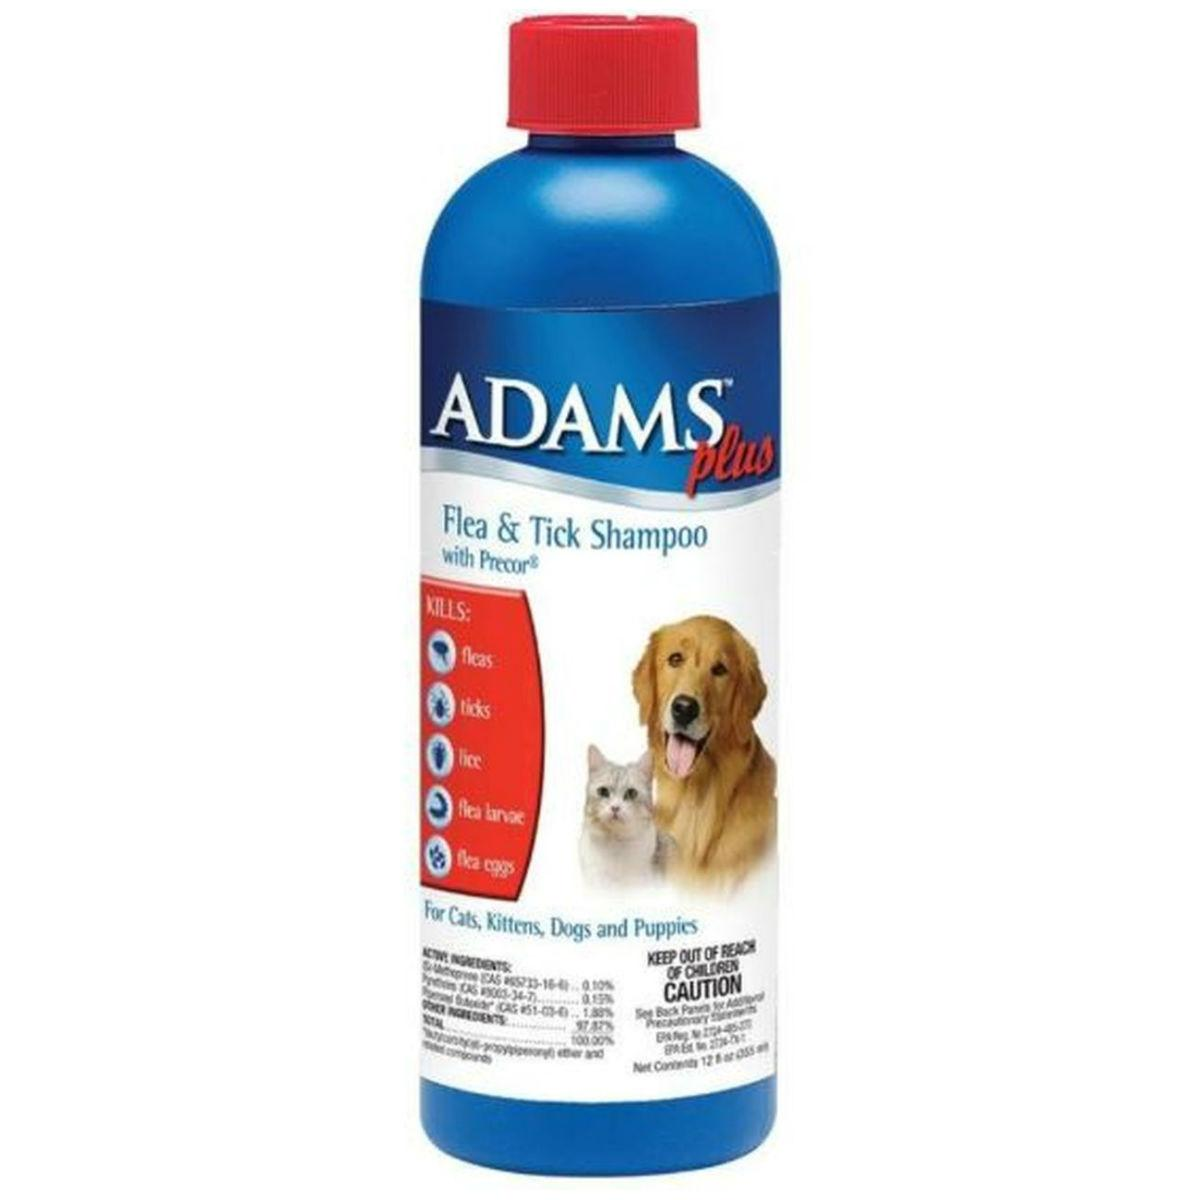 Adams Plus Flea and Tick Dog and Cat Shampoo with Precor